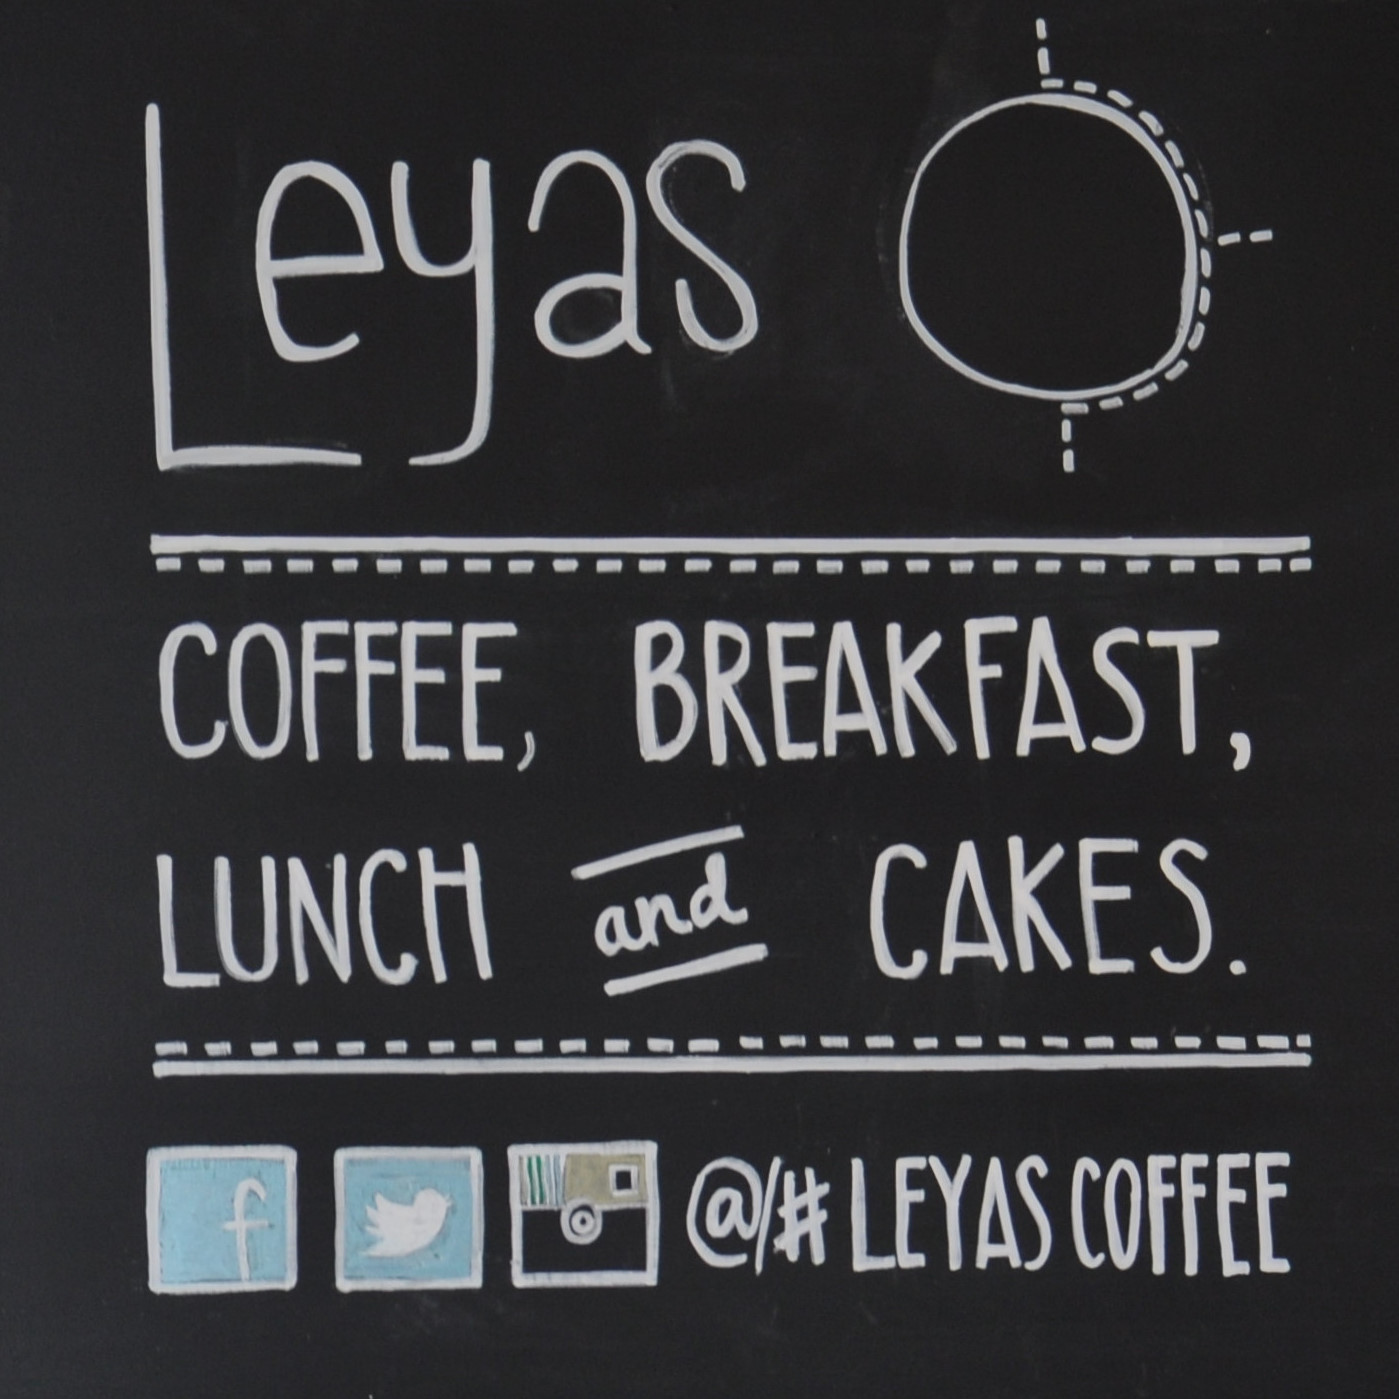 A chalkboard inside Leyas on Camden High Street, offering coffee, breakfast, lunch and cakes.